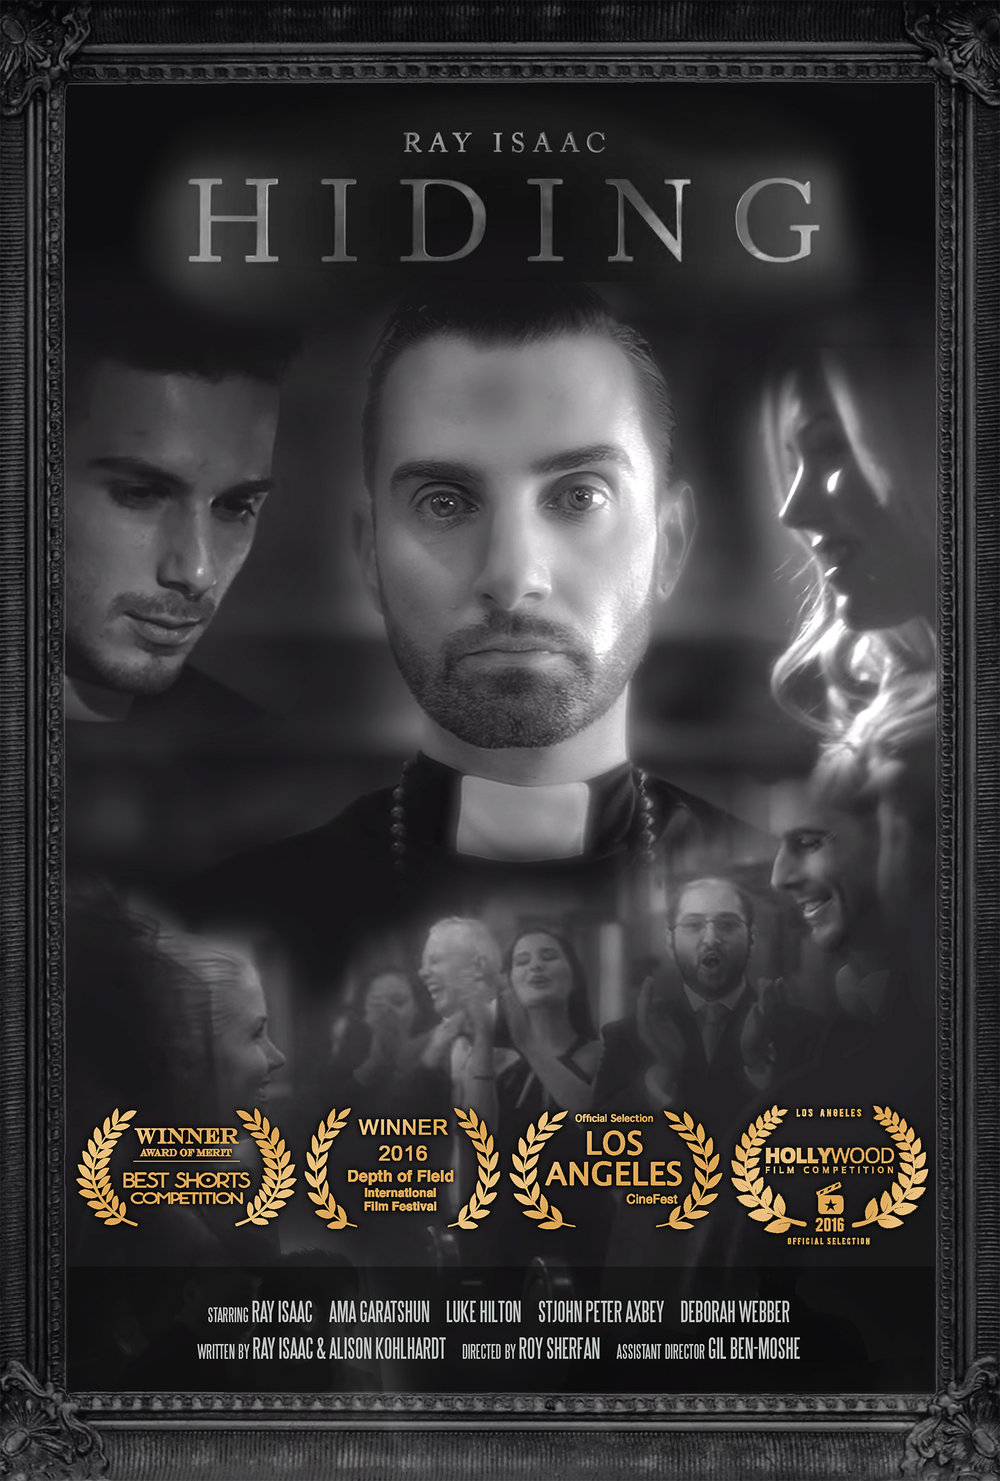 Hiding also was part of the Official Selection at the Los Angeles Cinefest for June, 2016 and is also part of the Official Selection line-up at the Los Angeles Hollywood Film Festival 2016.